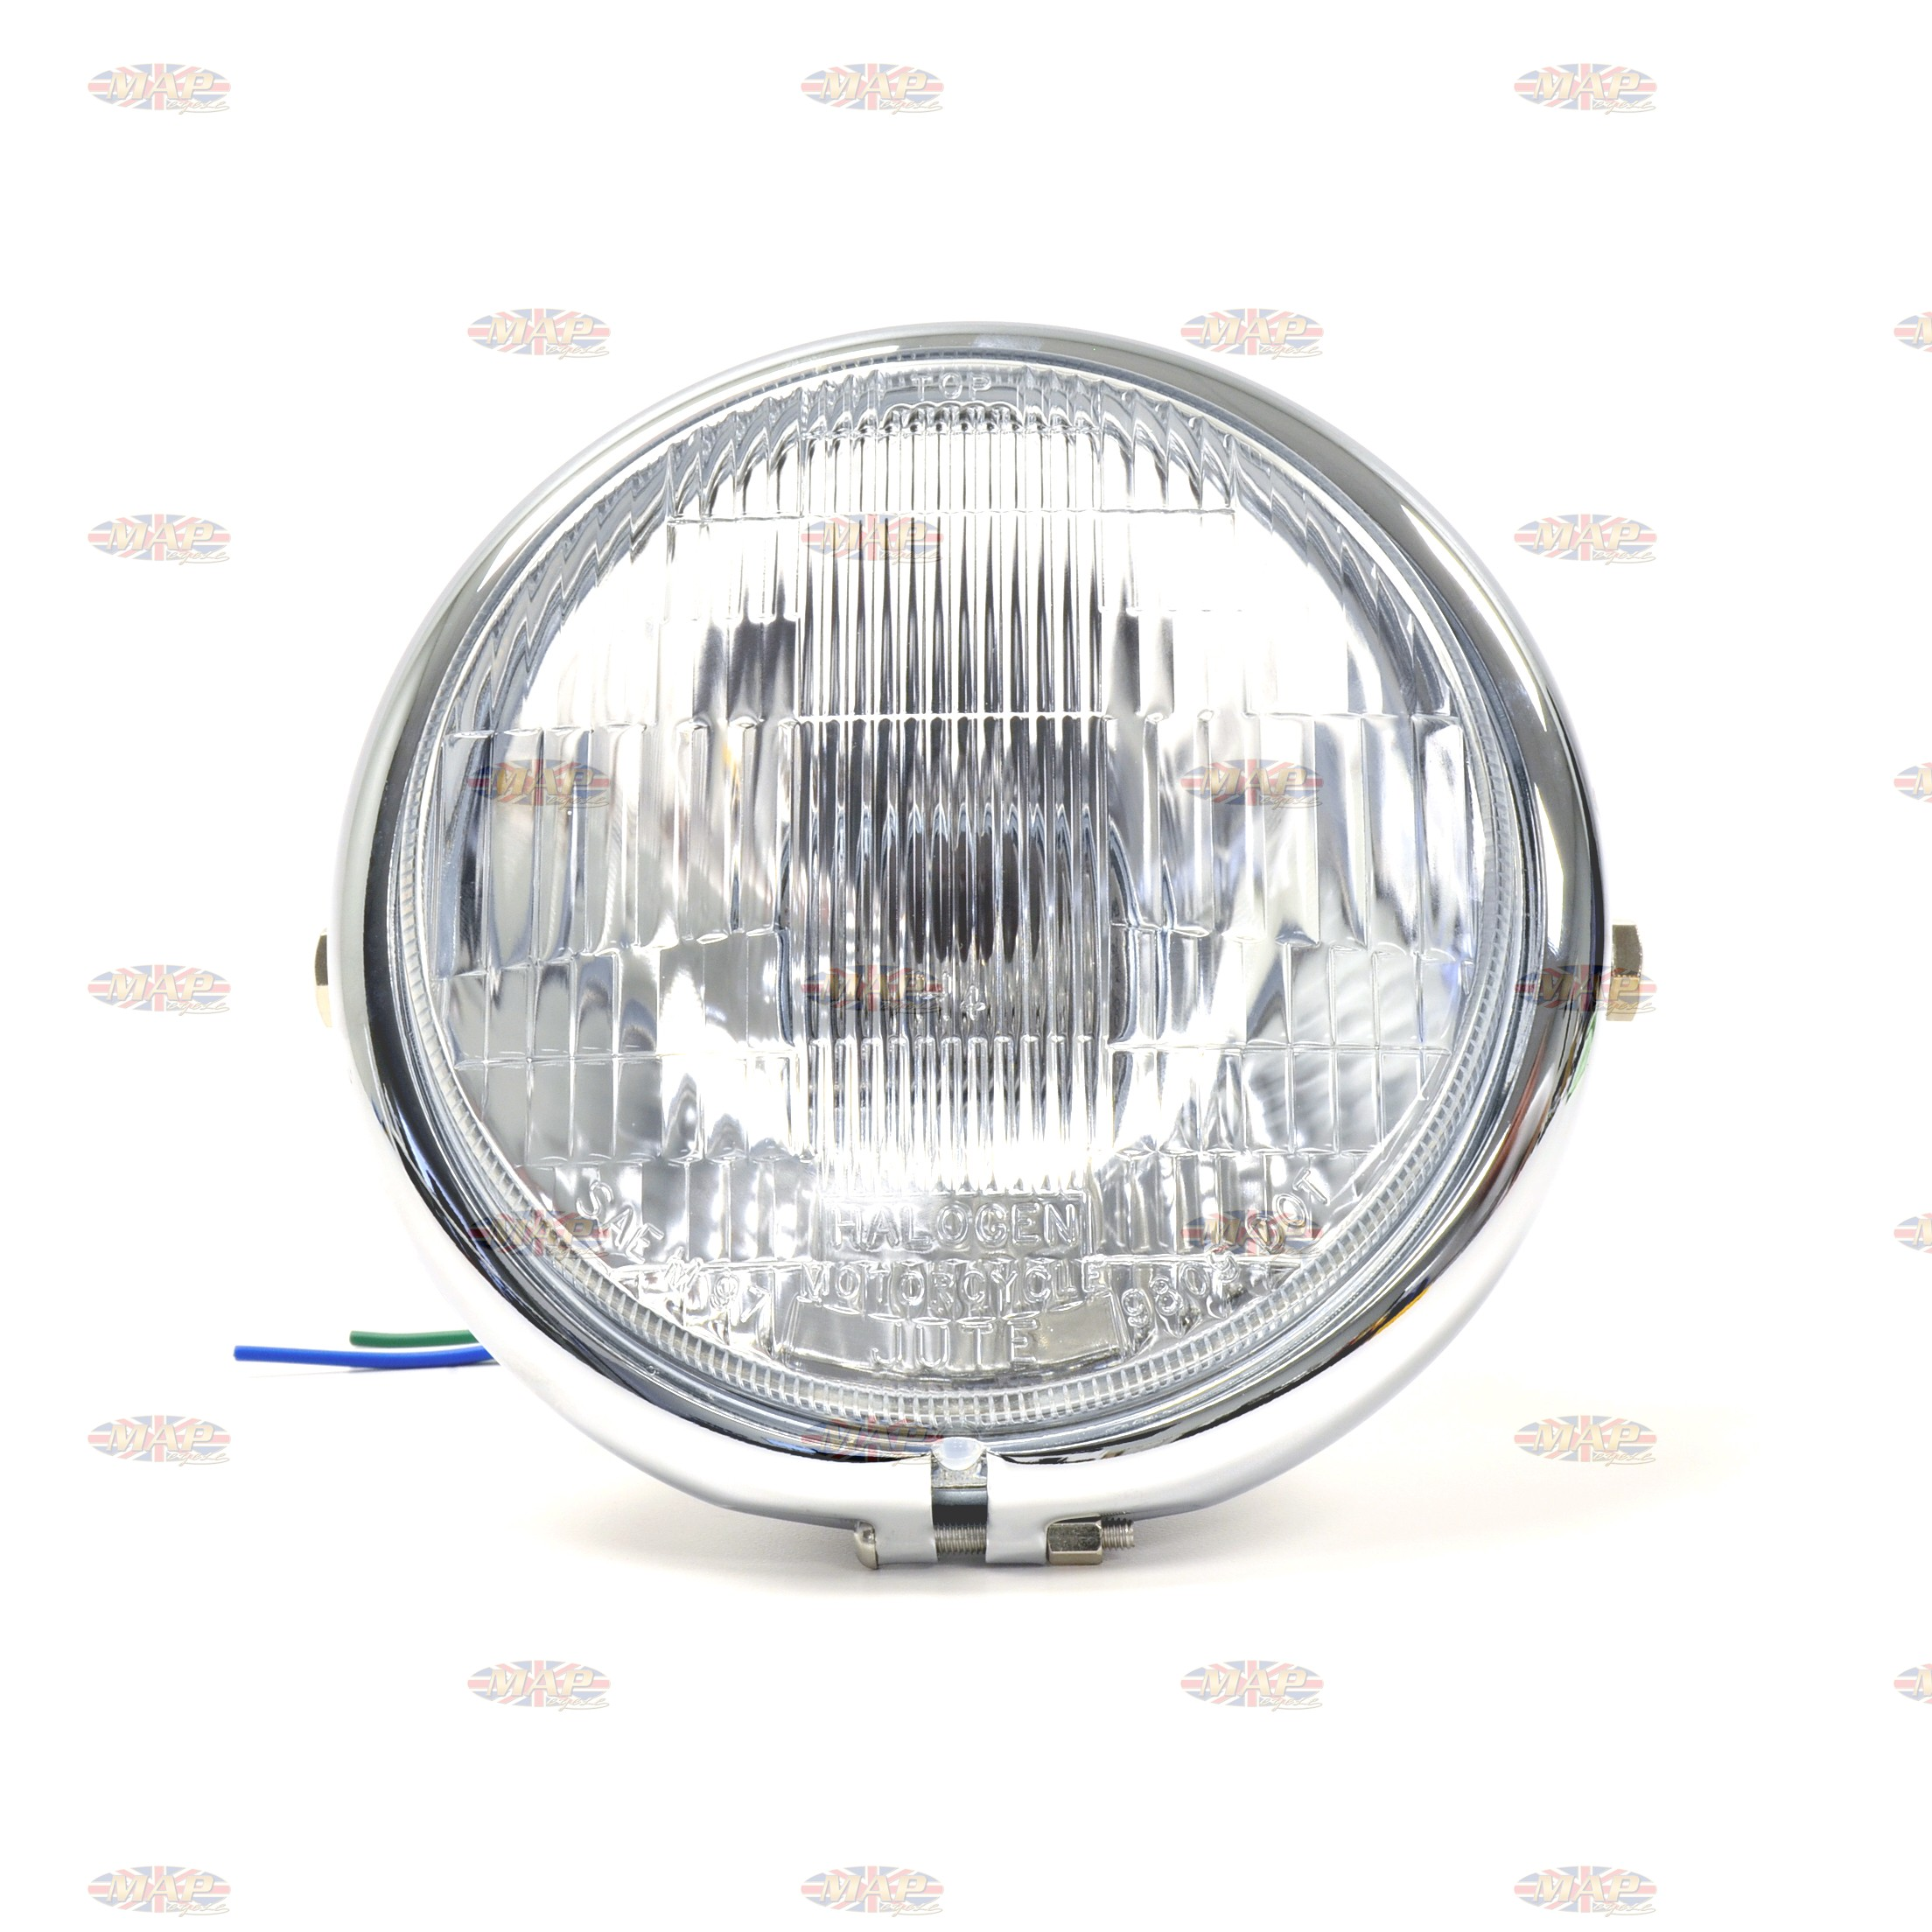 Bates Style 5 75 Chrome Side Mount Headlight With Blue Dot Beam Indicator